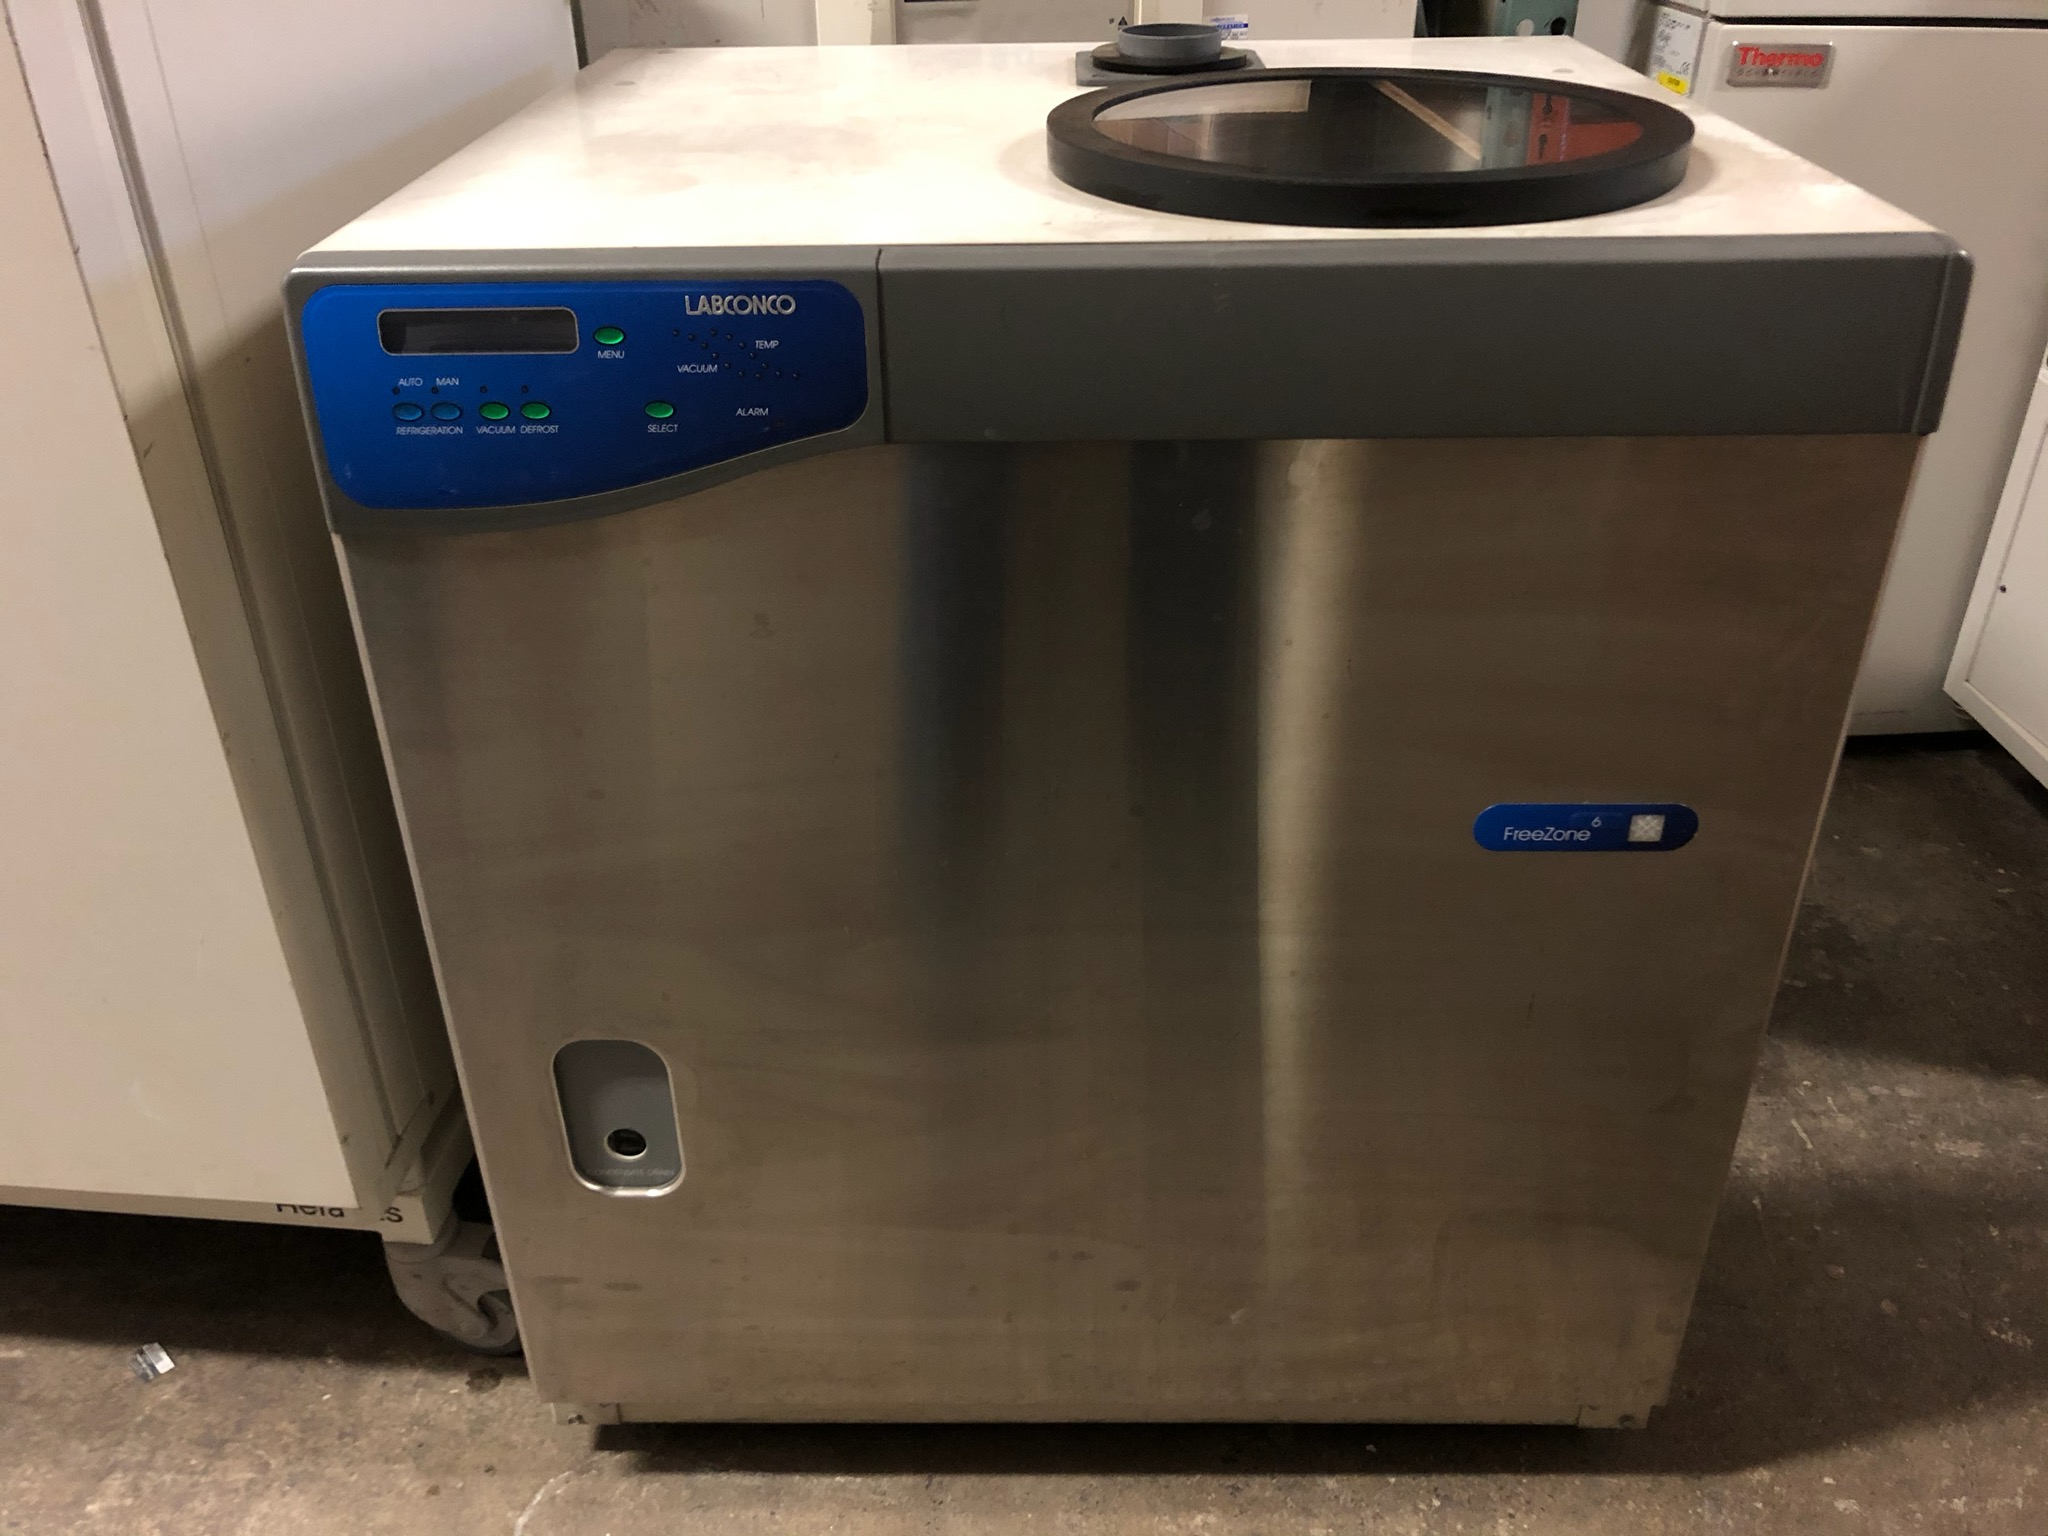 Labconco Freezone 6  Console Freeze Dryer